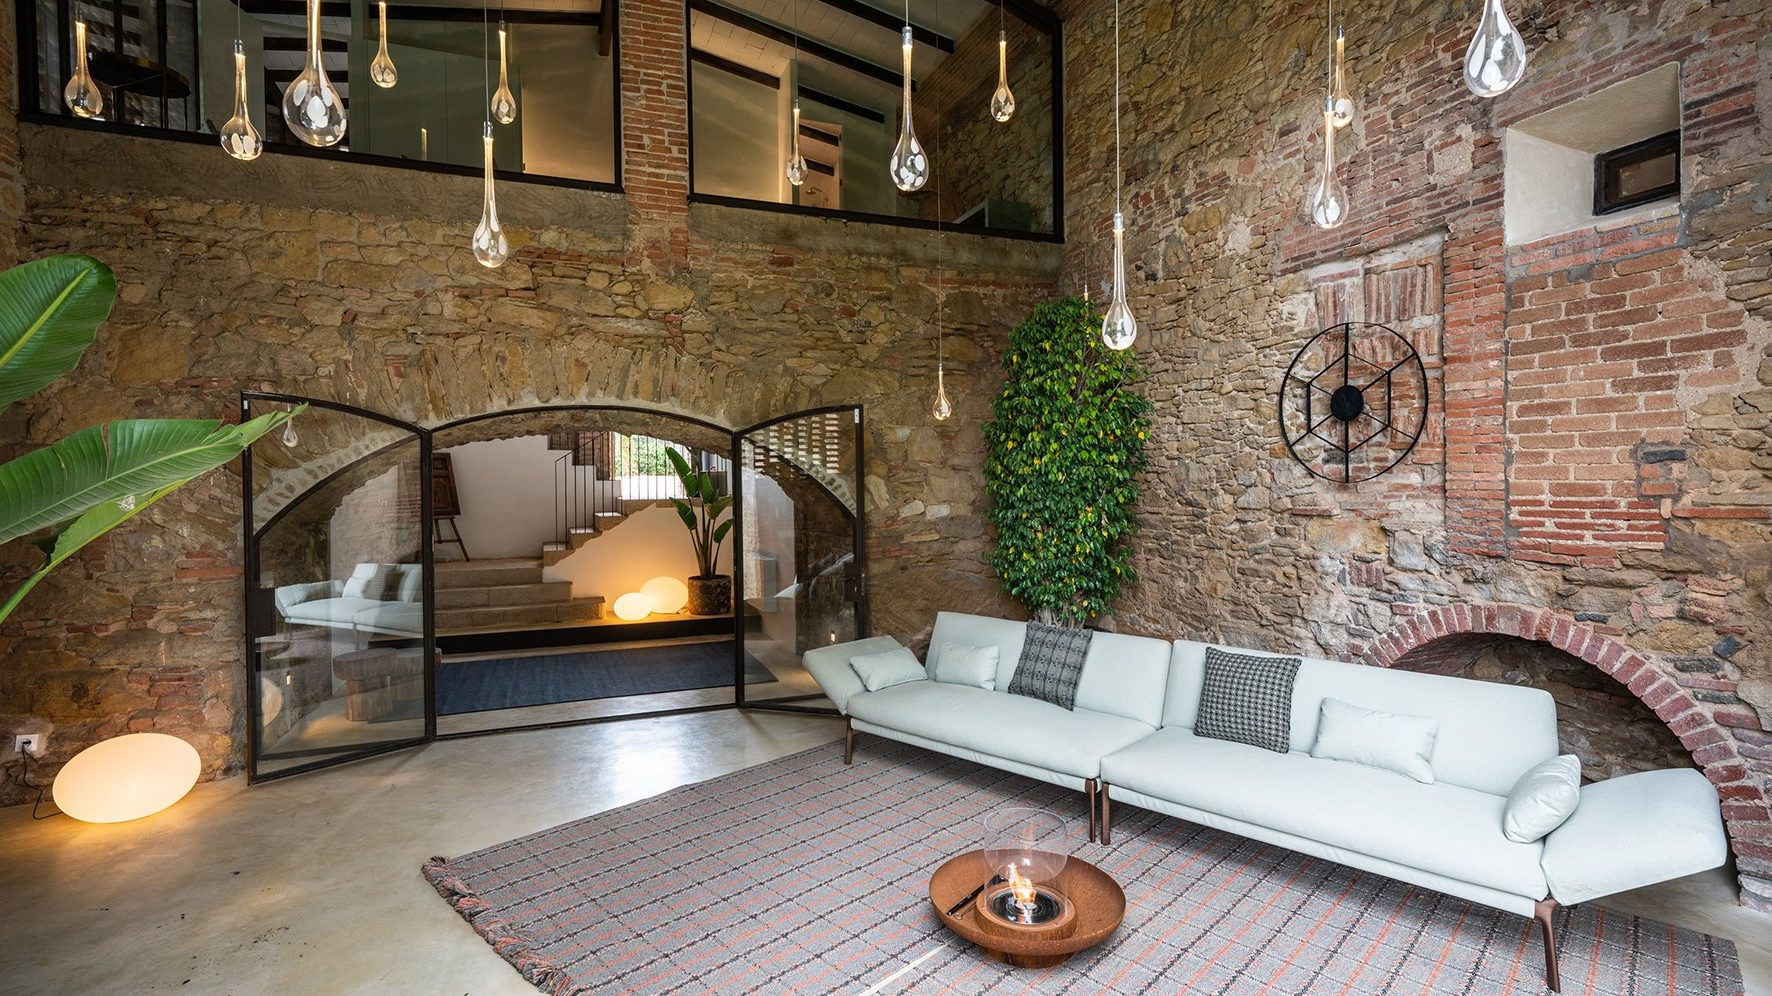 Interior design with natural elements